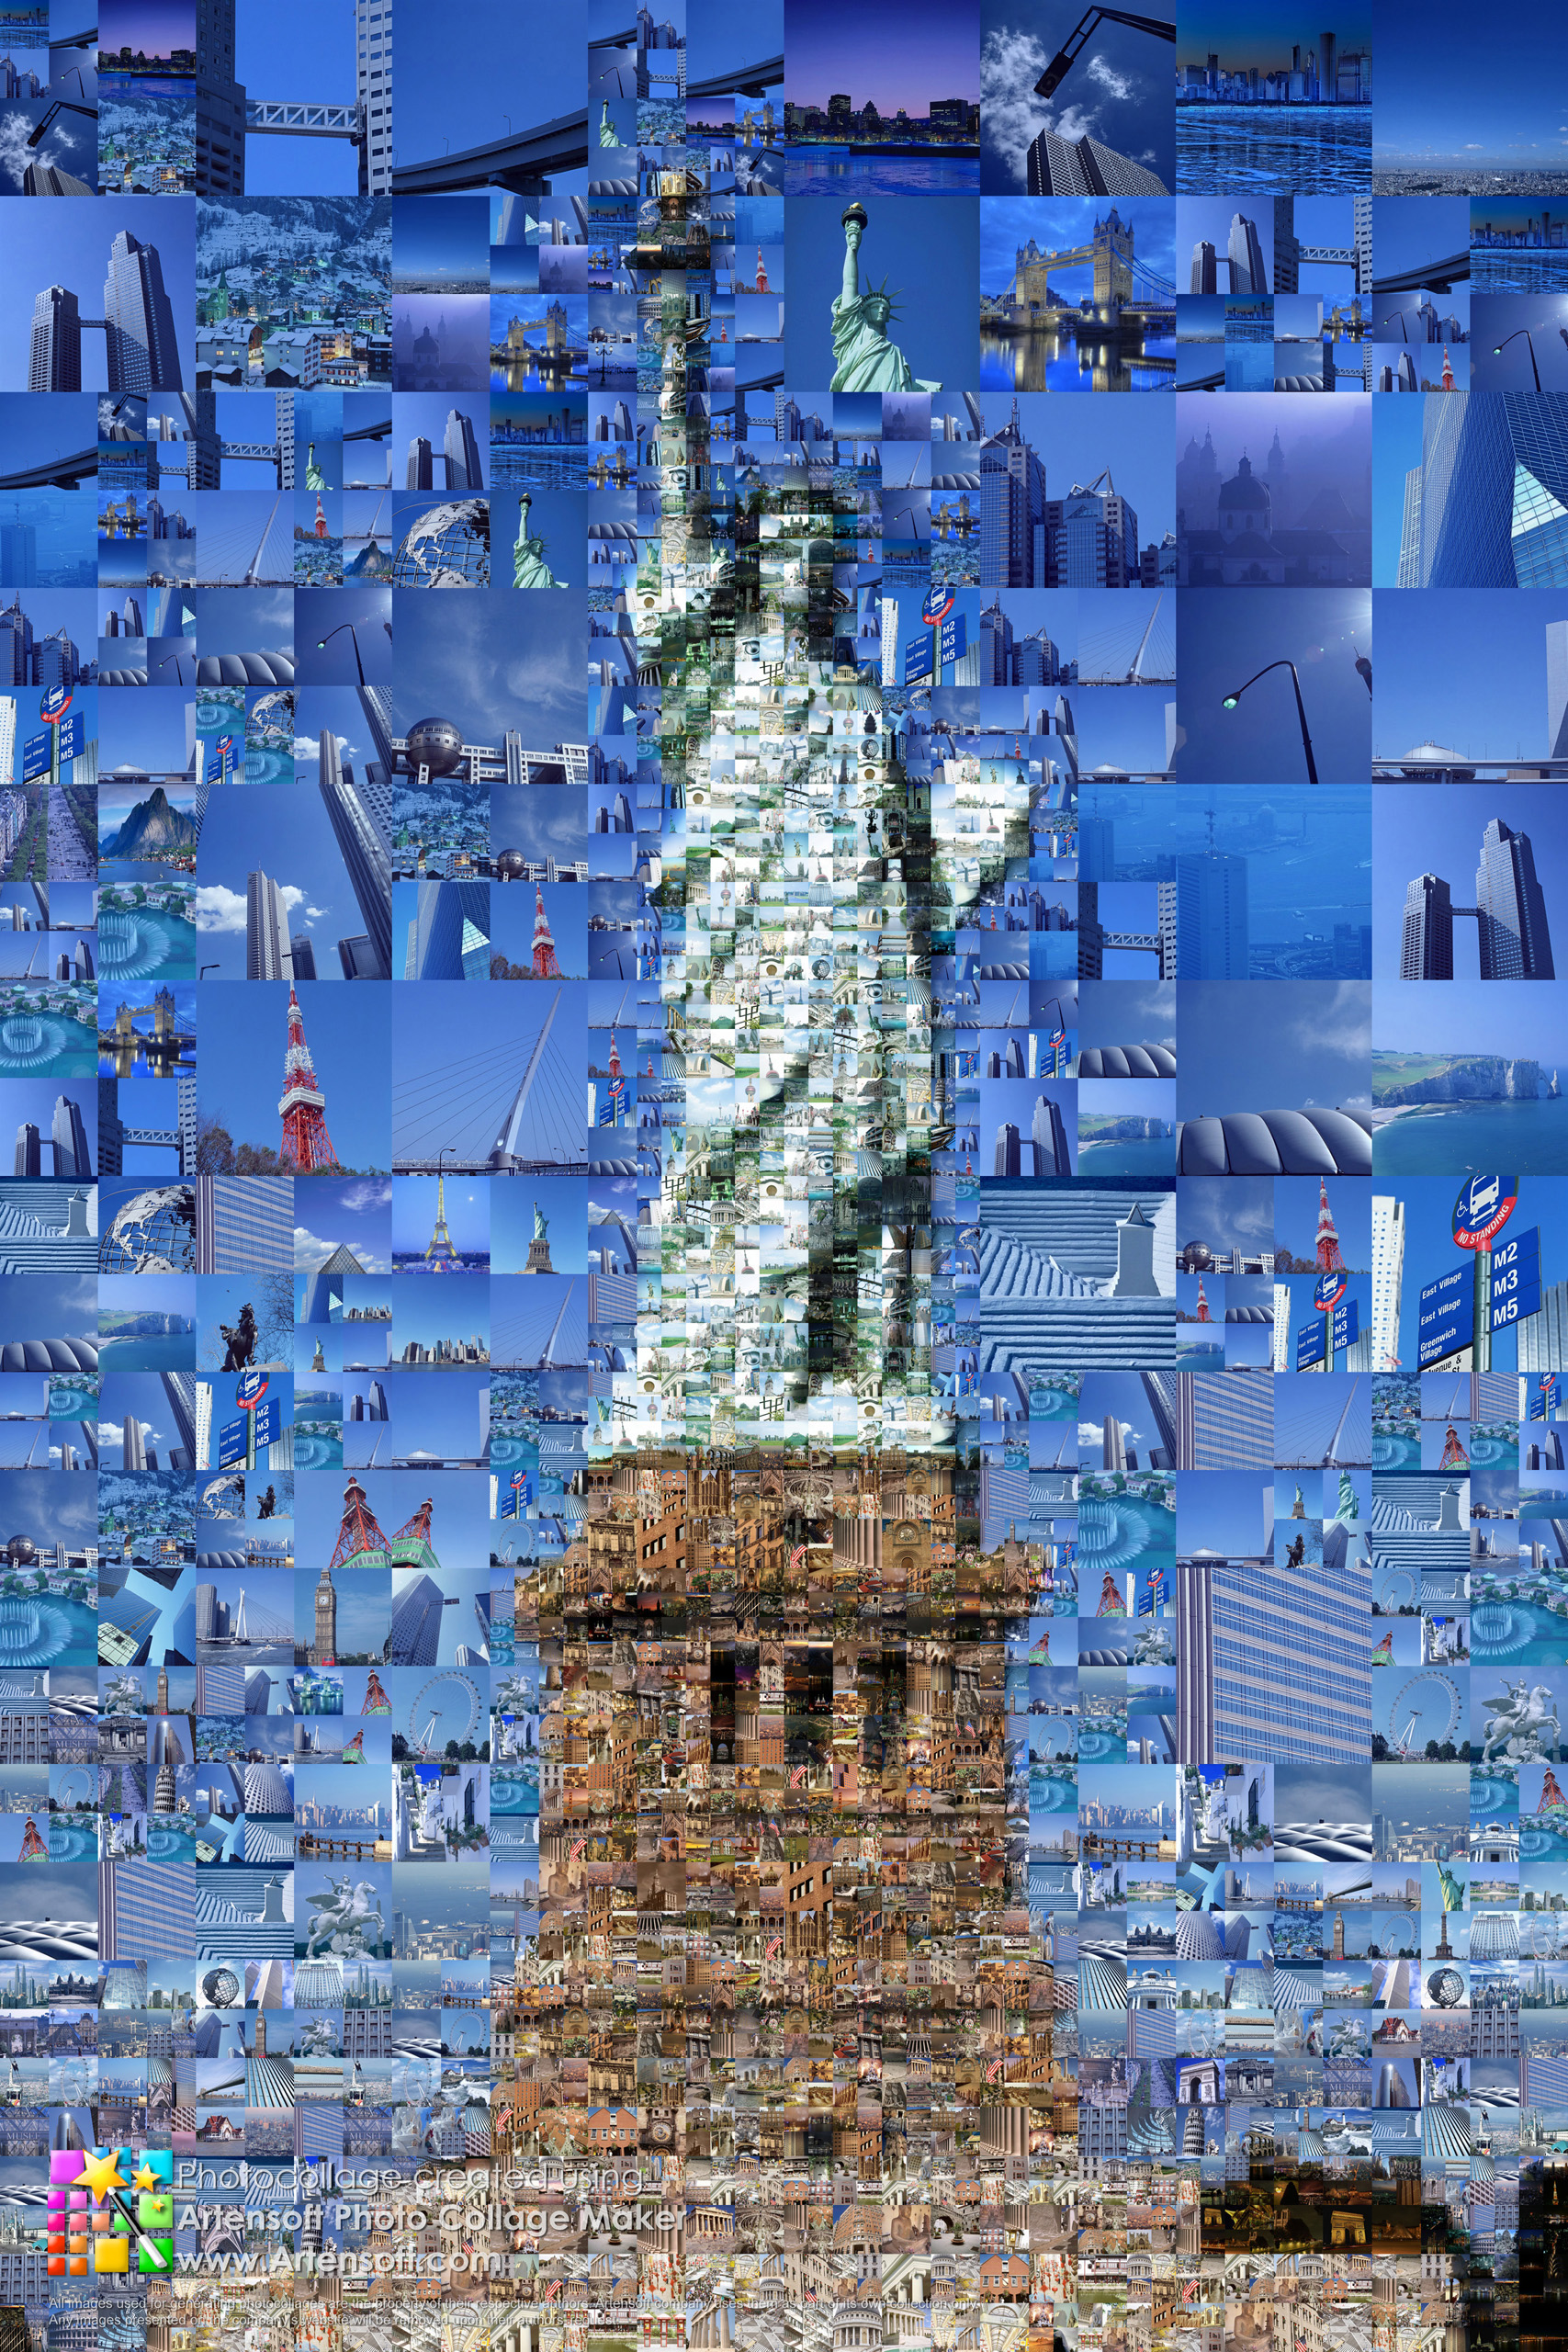 photo collage statue of liberty description program parameters for creating detailed view. Black Bedroom Furniture Sets. Home Design Ideas